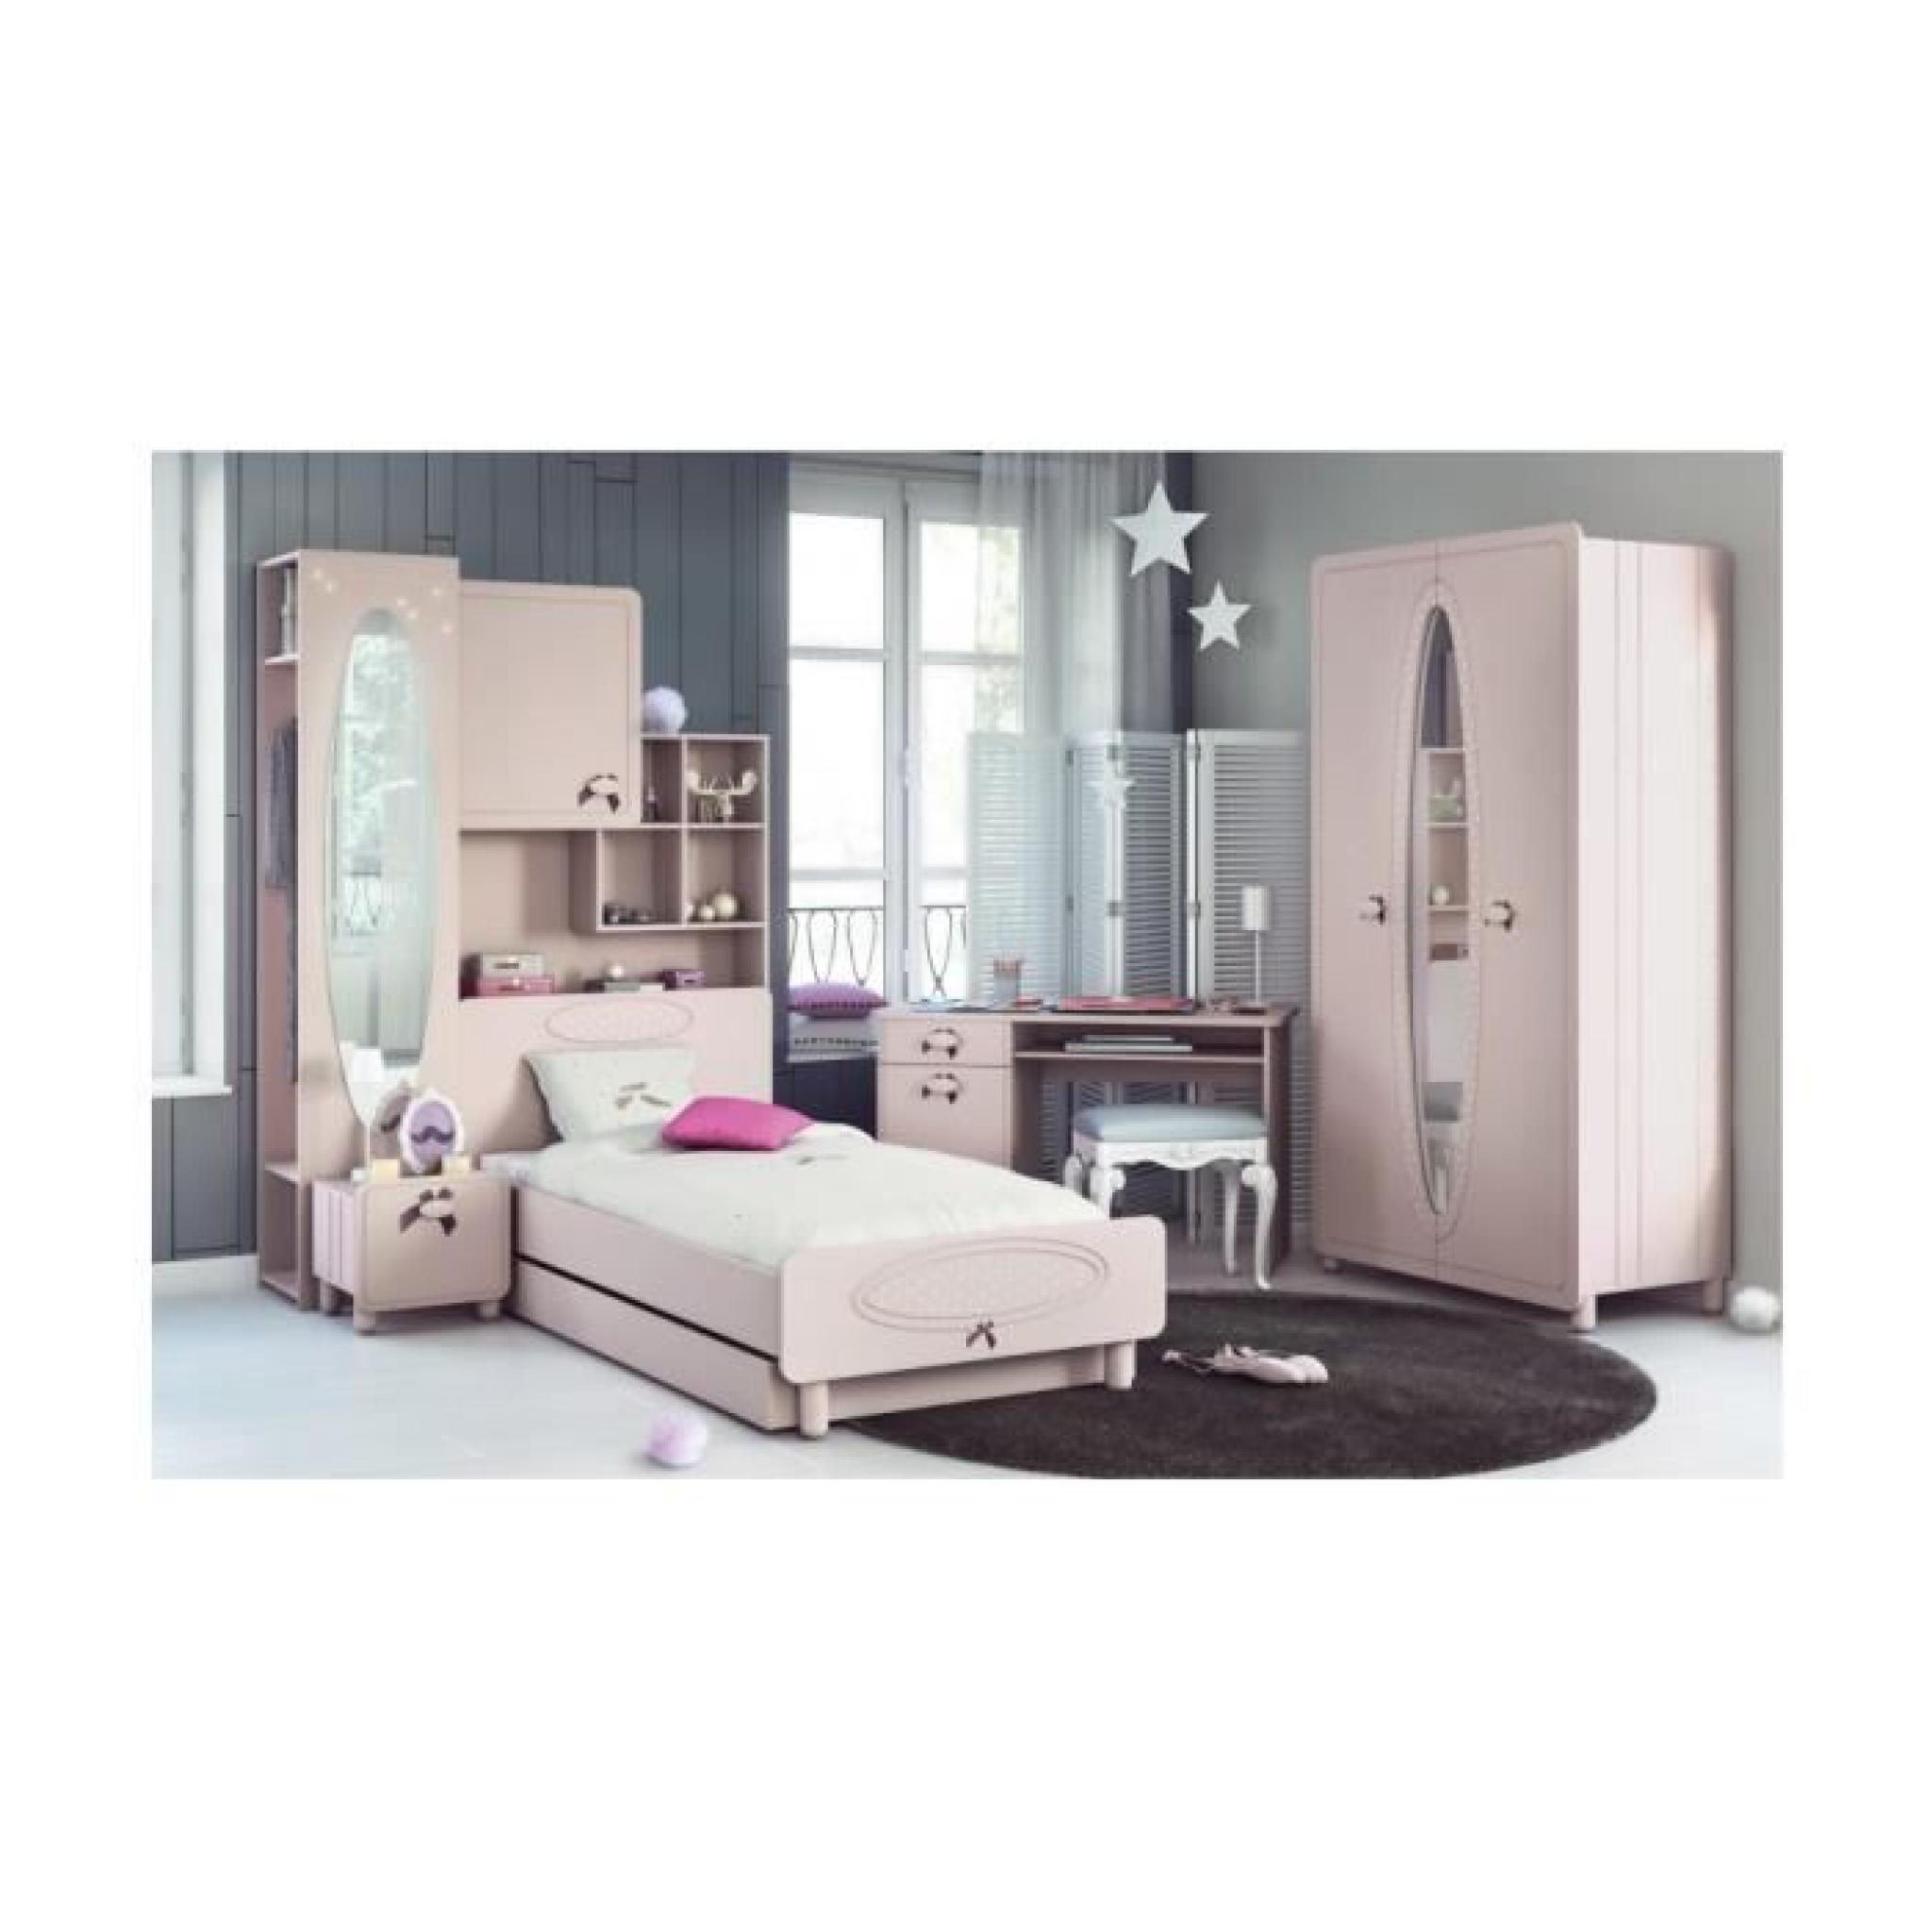 armoire pont de lit lit escamotable conforama excellent. Black Bedroom Furniture Sets. Home Design Ideas